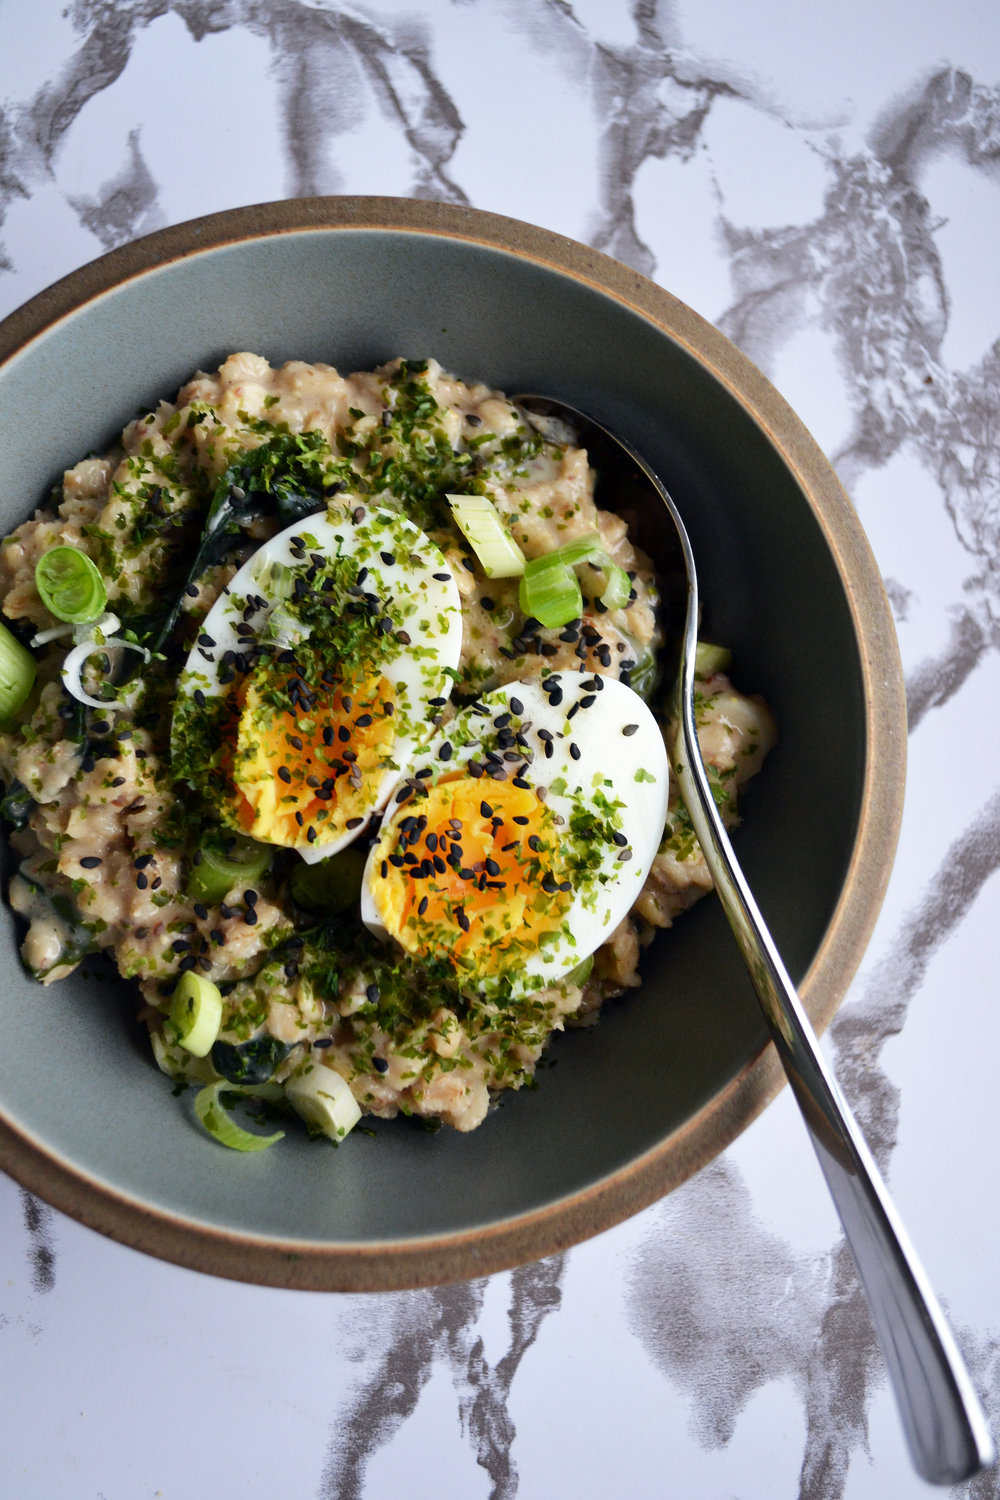 Miso and wakame oats | The Flourishing Pantry